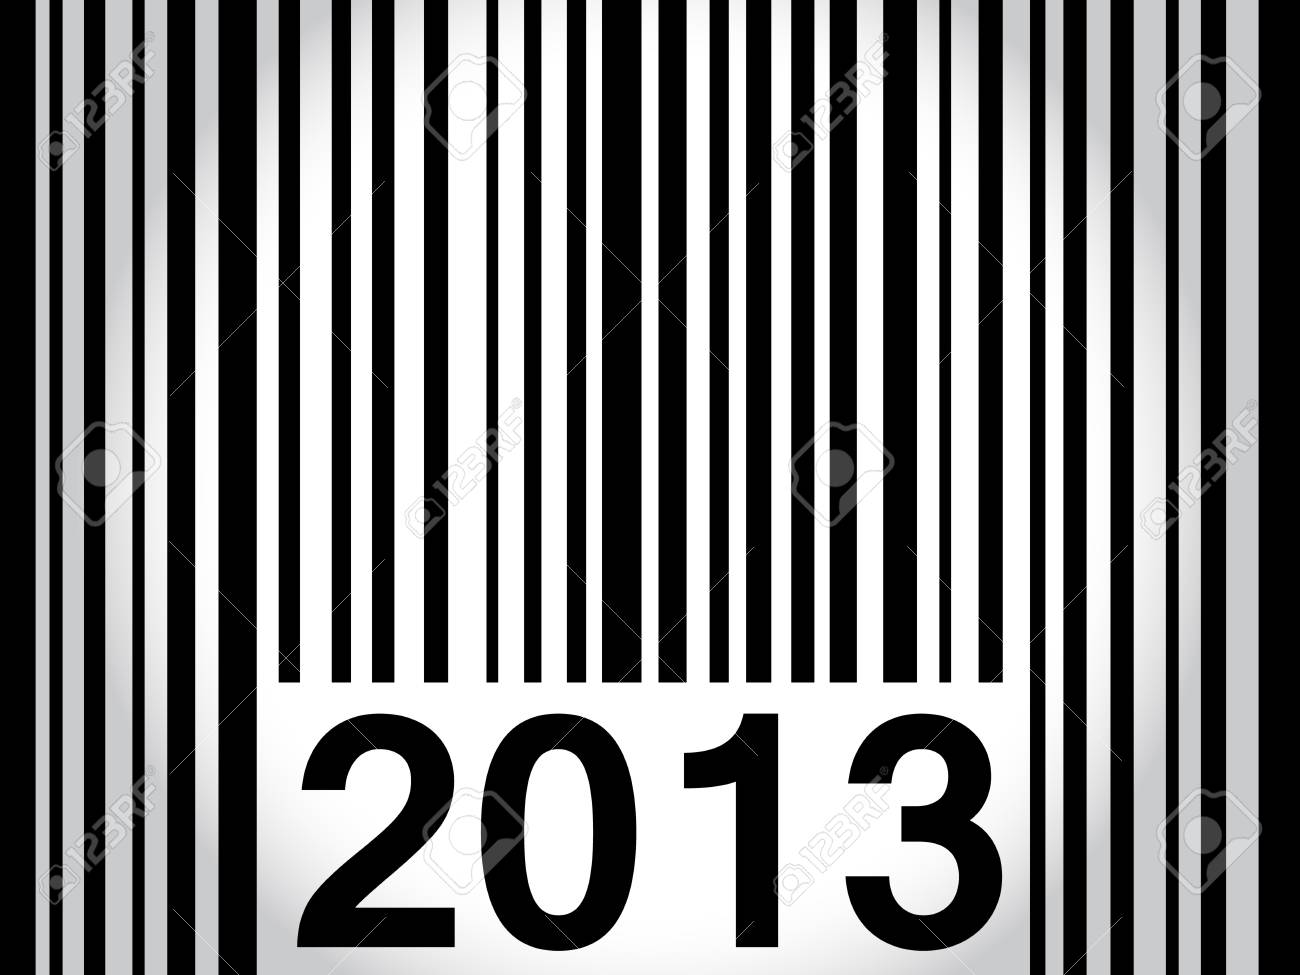 original way to wish happy new year 2013 with bar code in black over white to